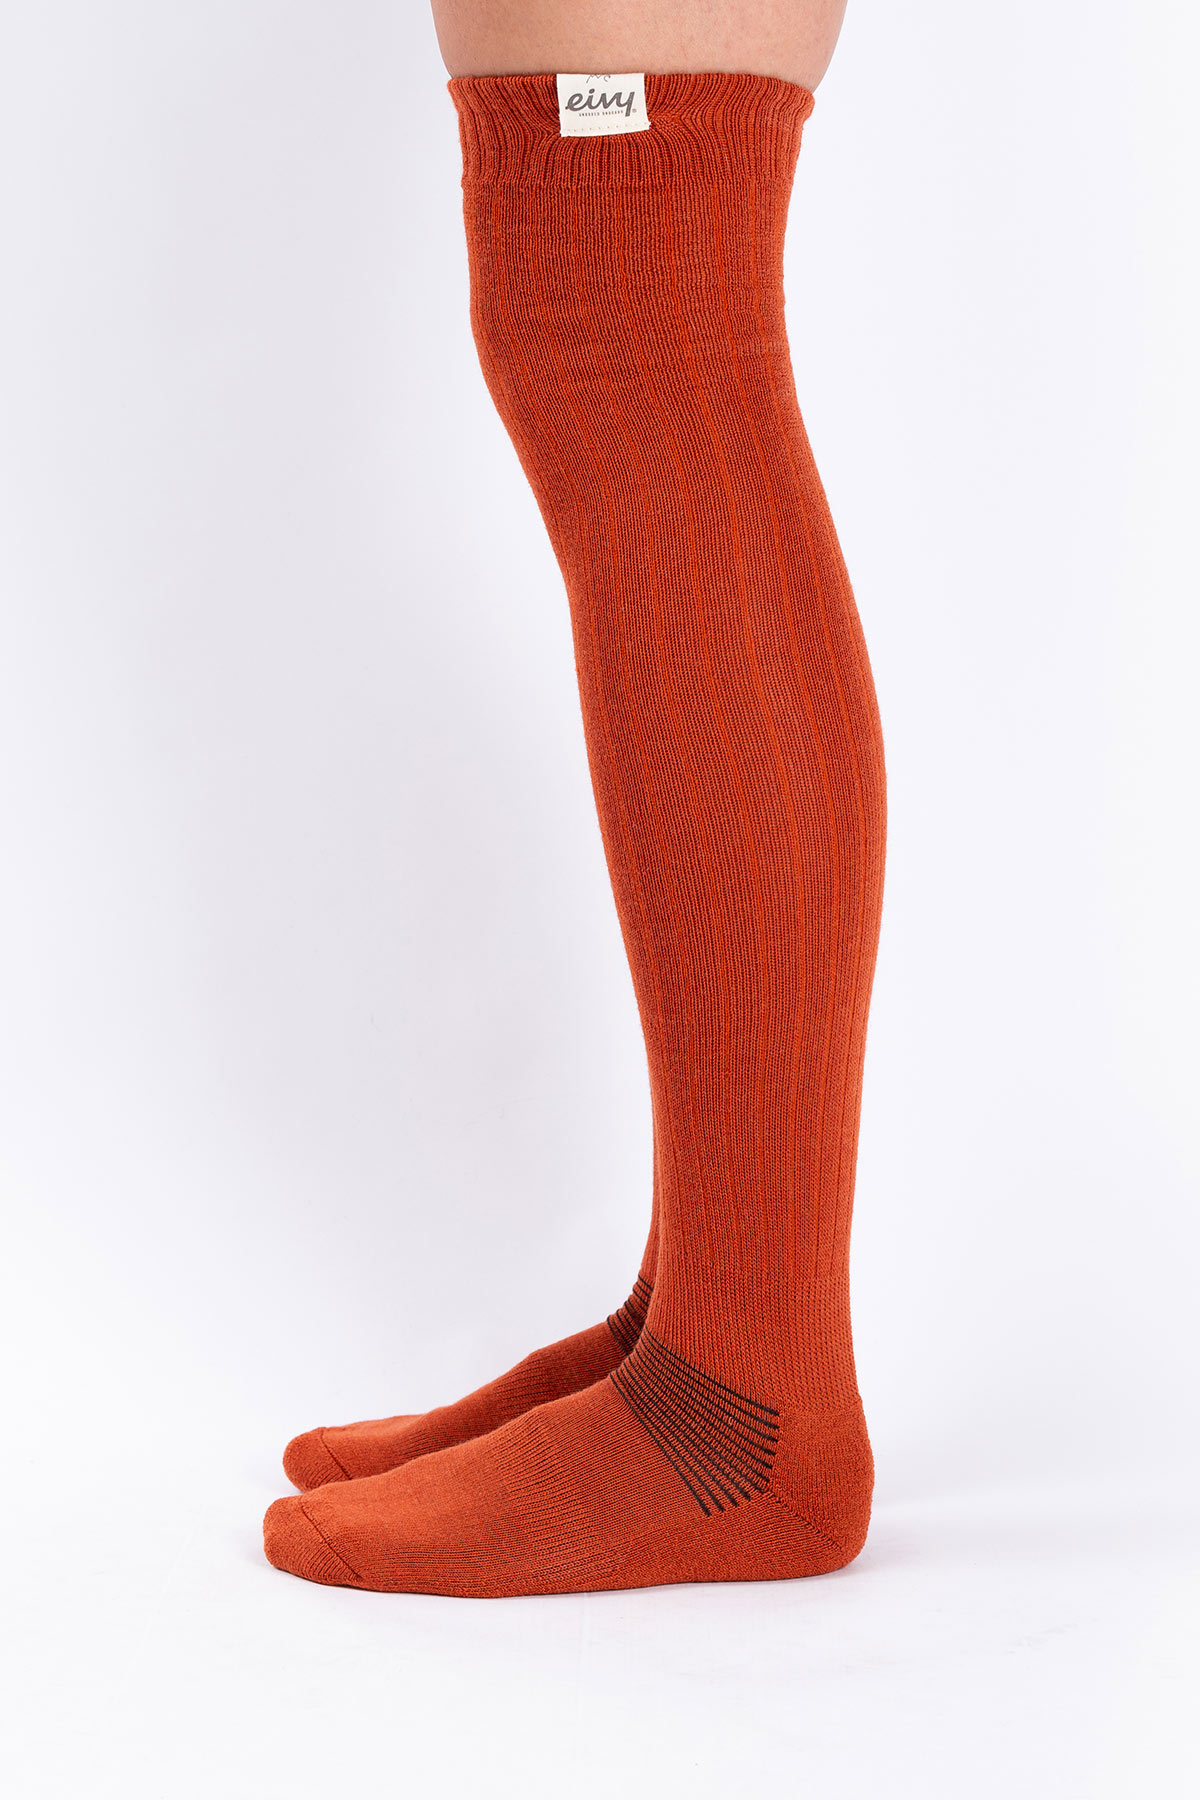 Socks | Rib High Wool - Rustic